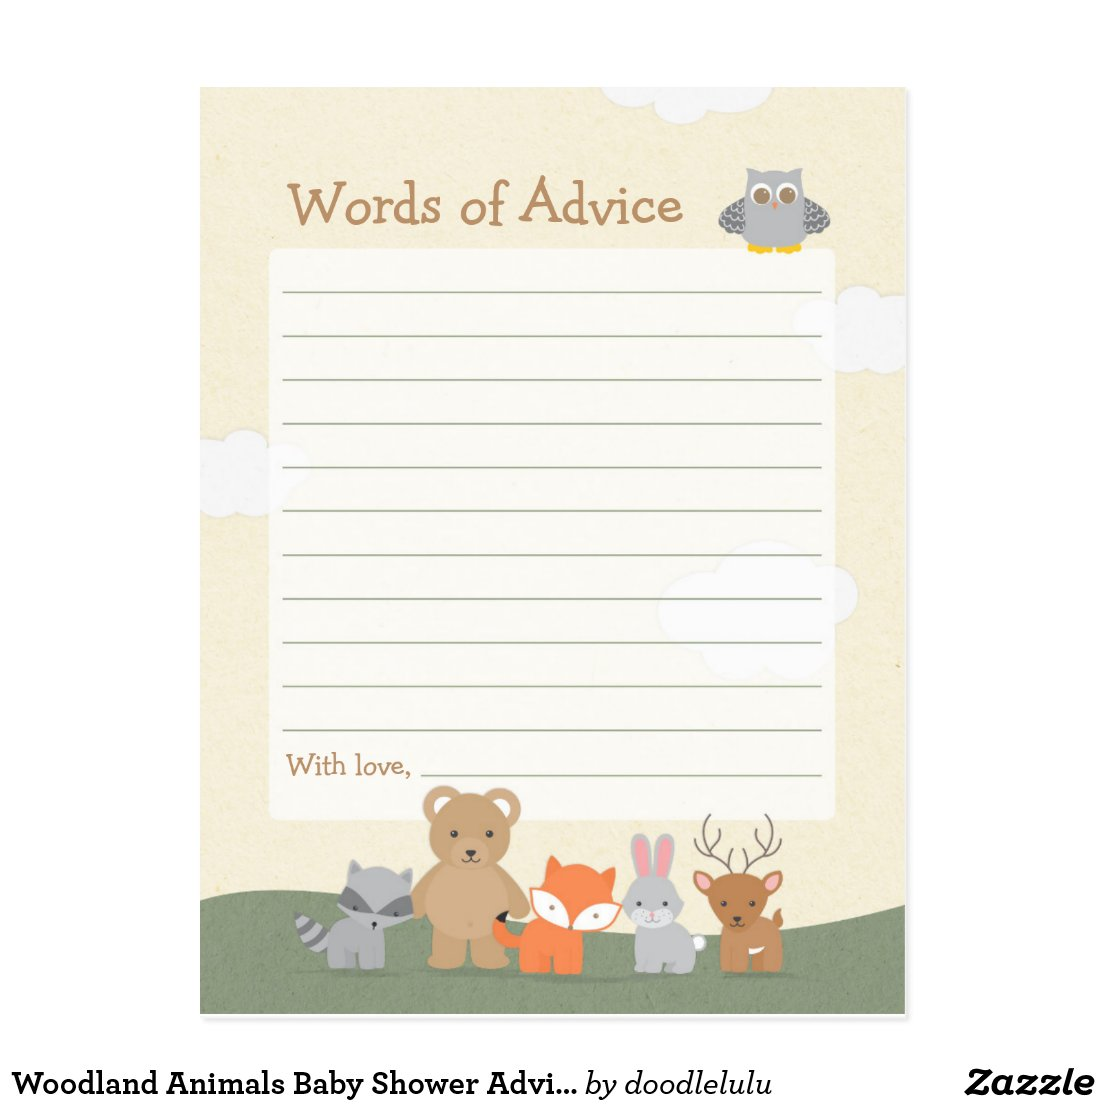 Woodland Animals Baby Shower Advice Game Postcard